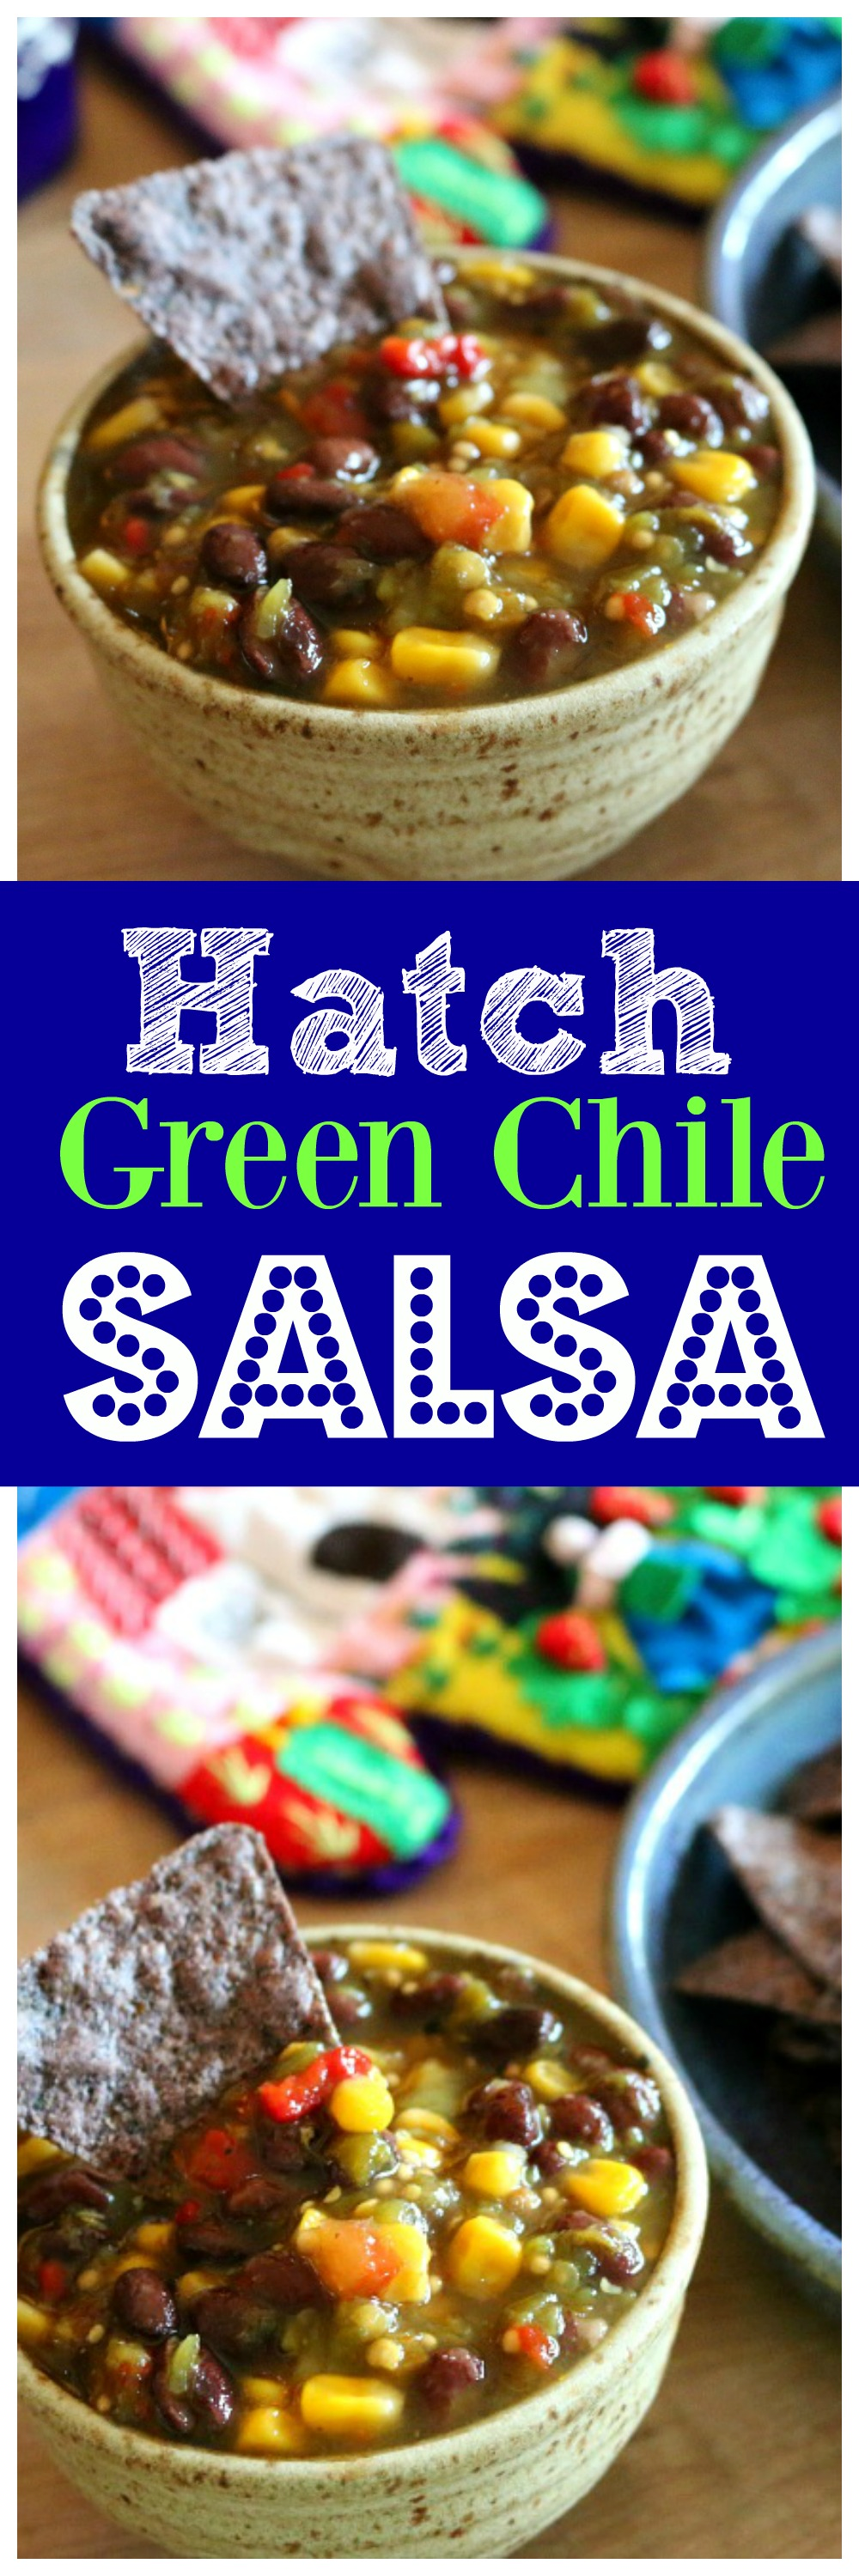 Hatch Green Chile Salsa - Simple and Easy Salsa made in a few minutes - CeceliasGoodStuff.com